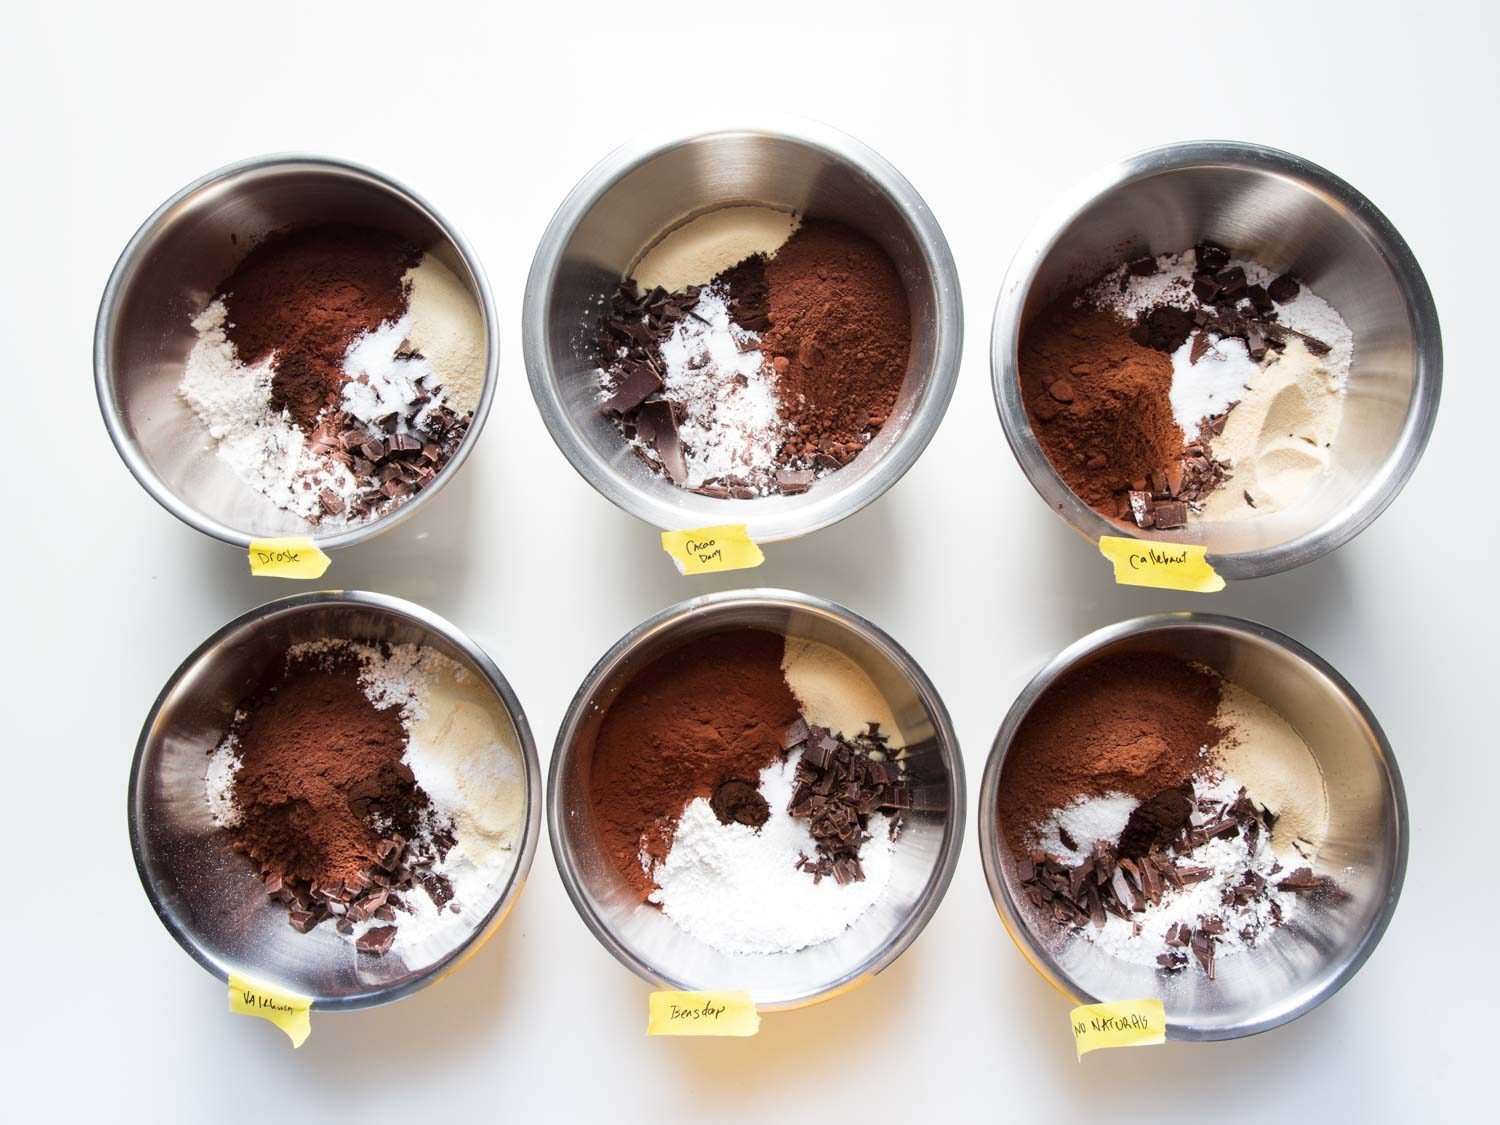 Overhead shot of six bowls containing ingredients for homemade brownie mix, each with a different variety of Dutch cocoa